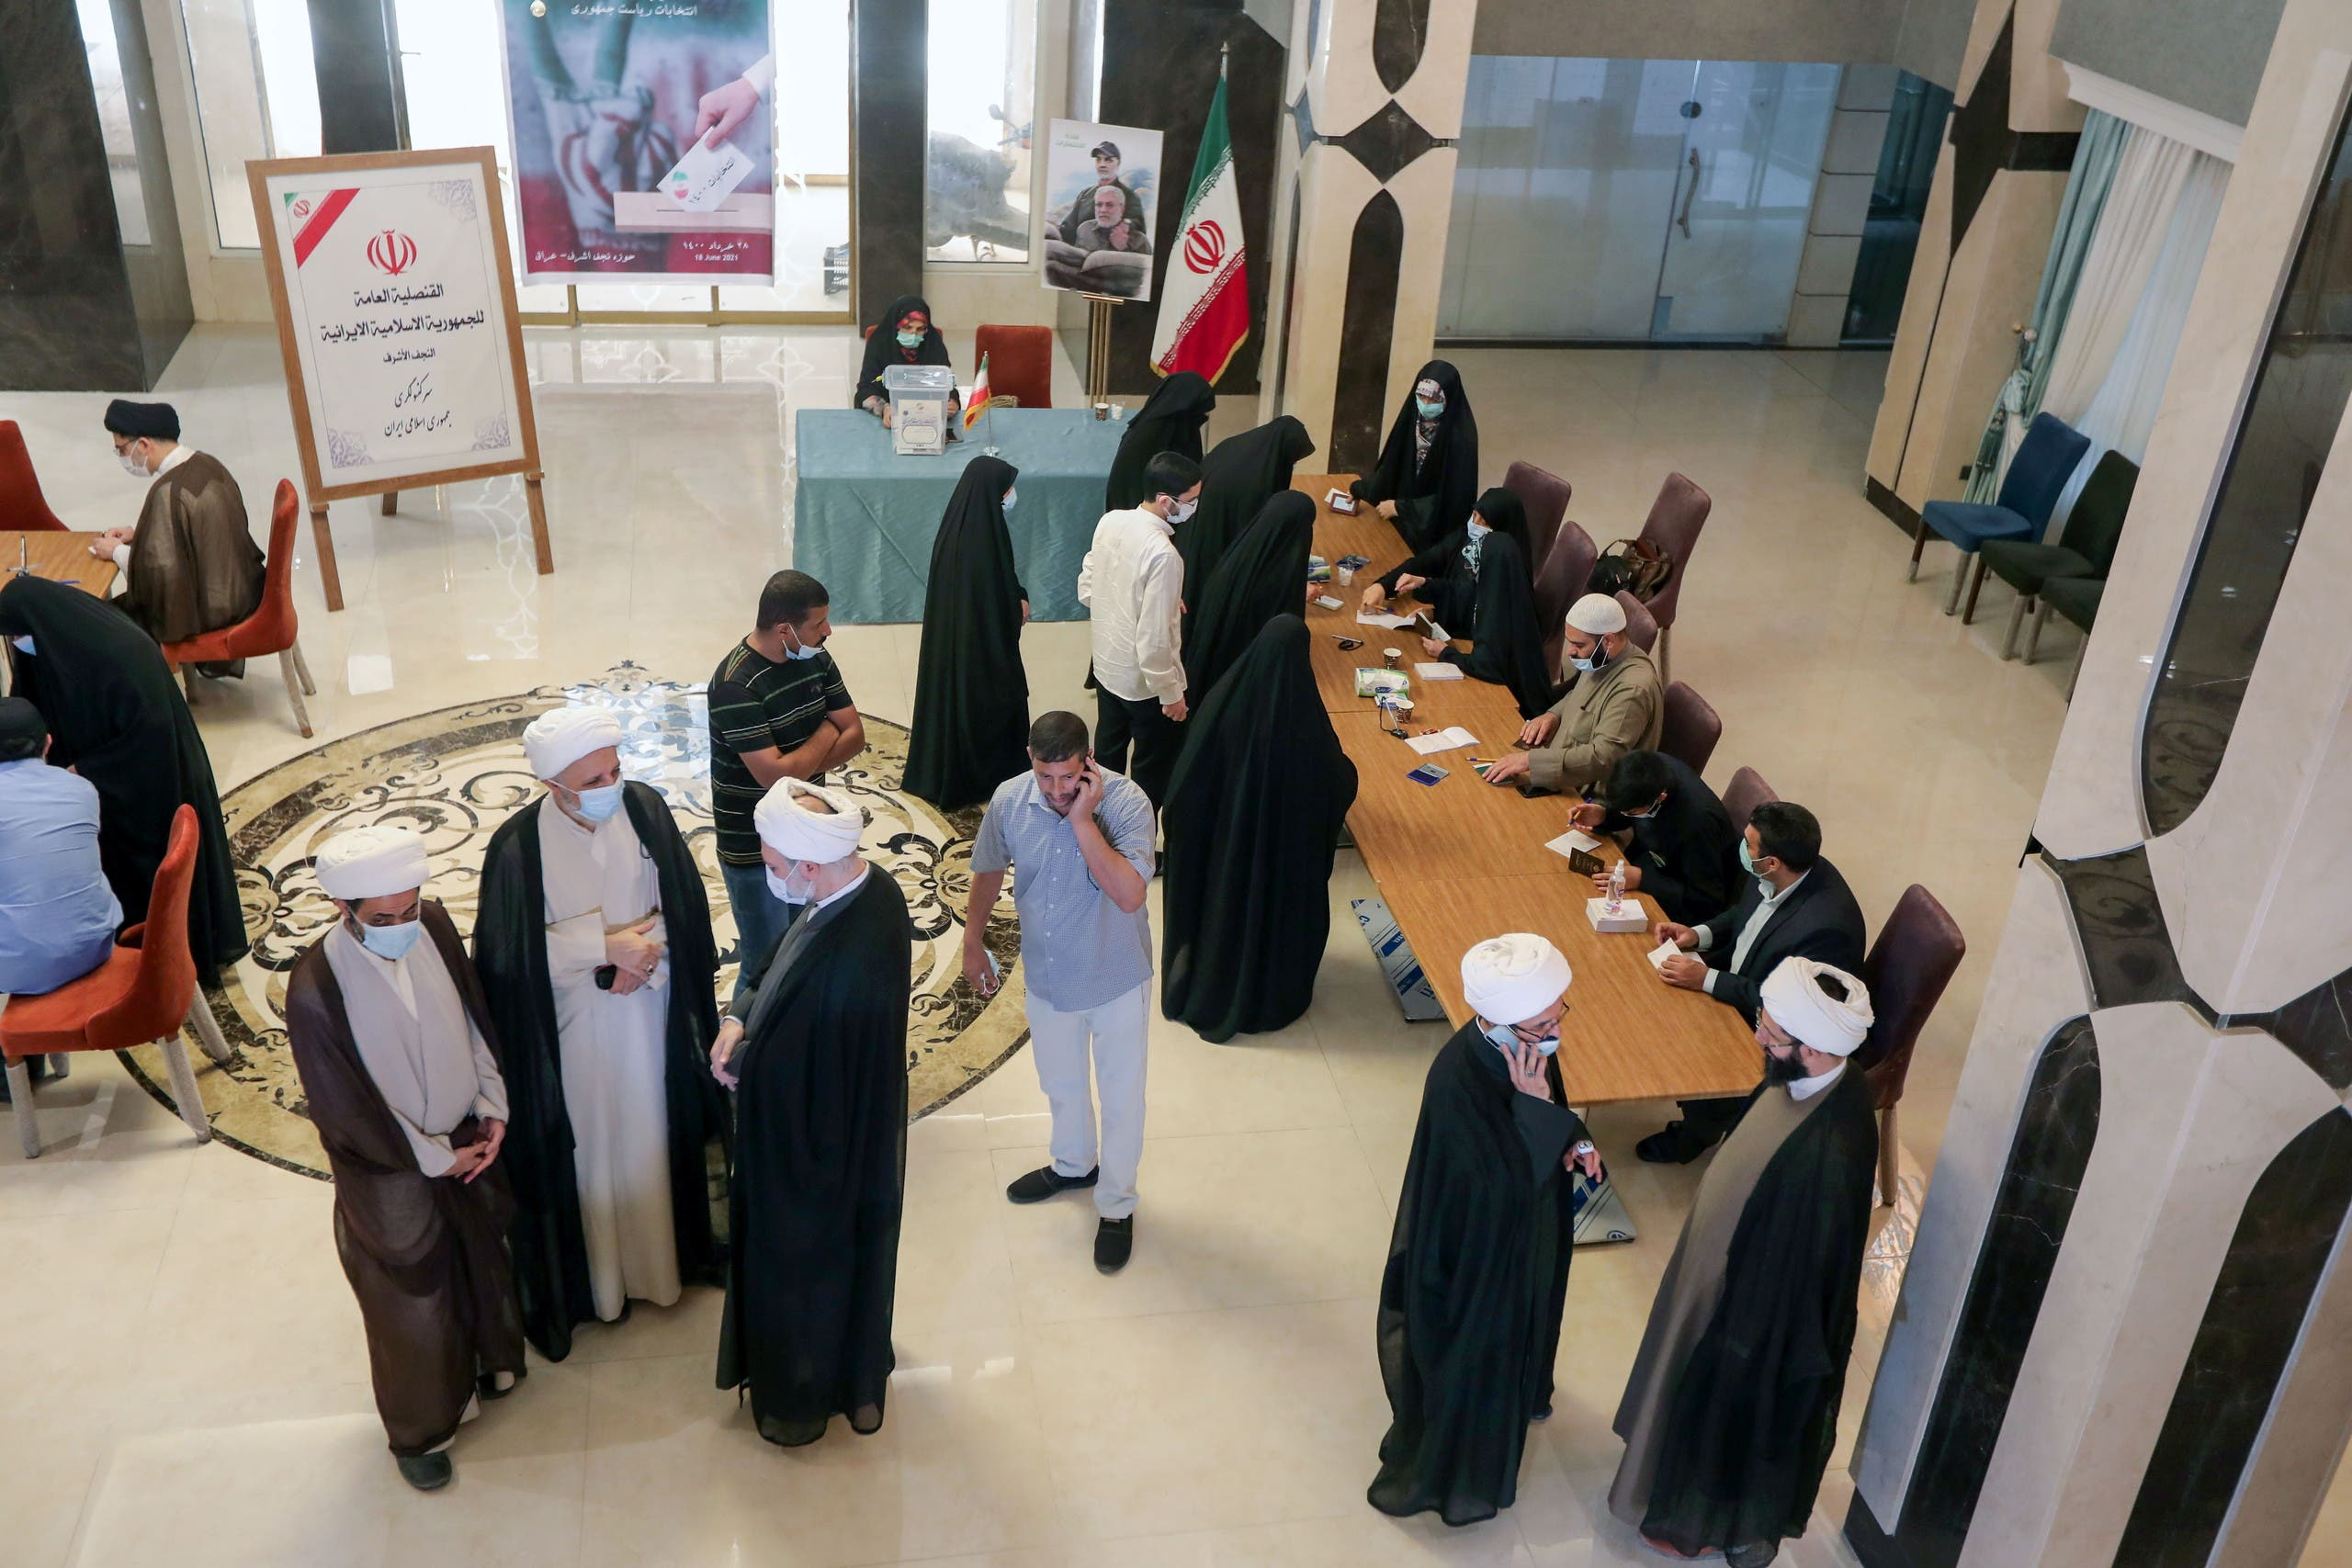 Iranian people gather to vote during Iranian presidential election at the Iranian consulate, in Najaf, Iraq, June 18, 2021. (Reuters)